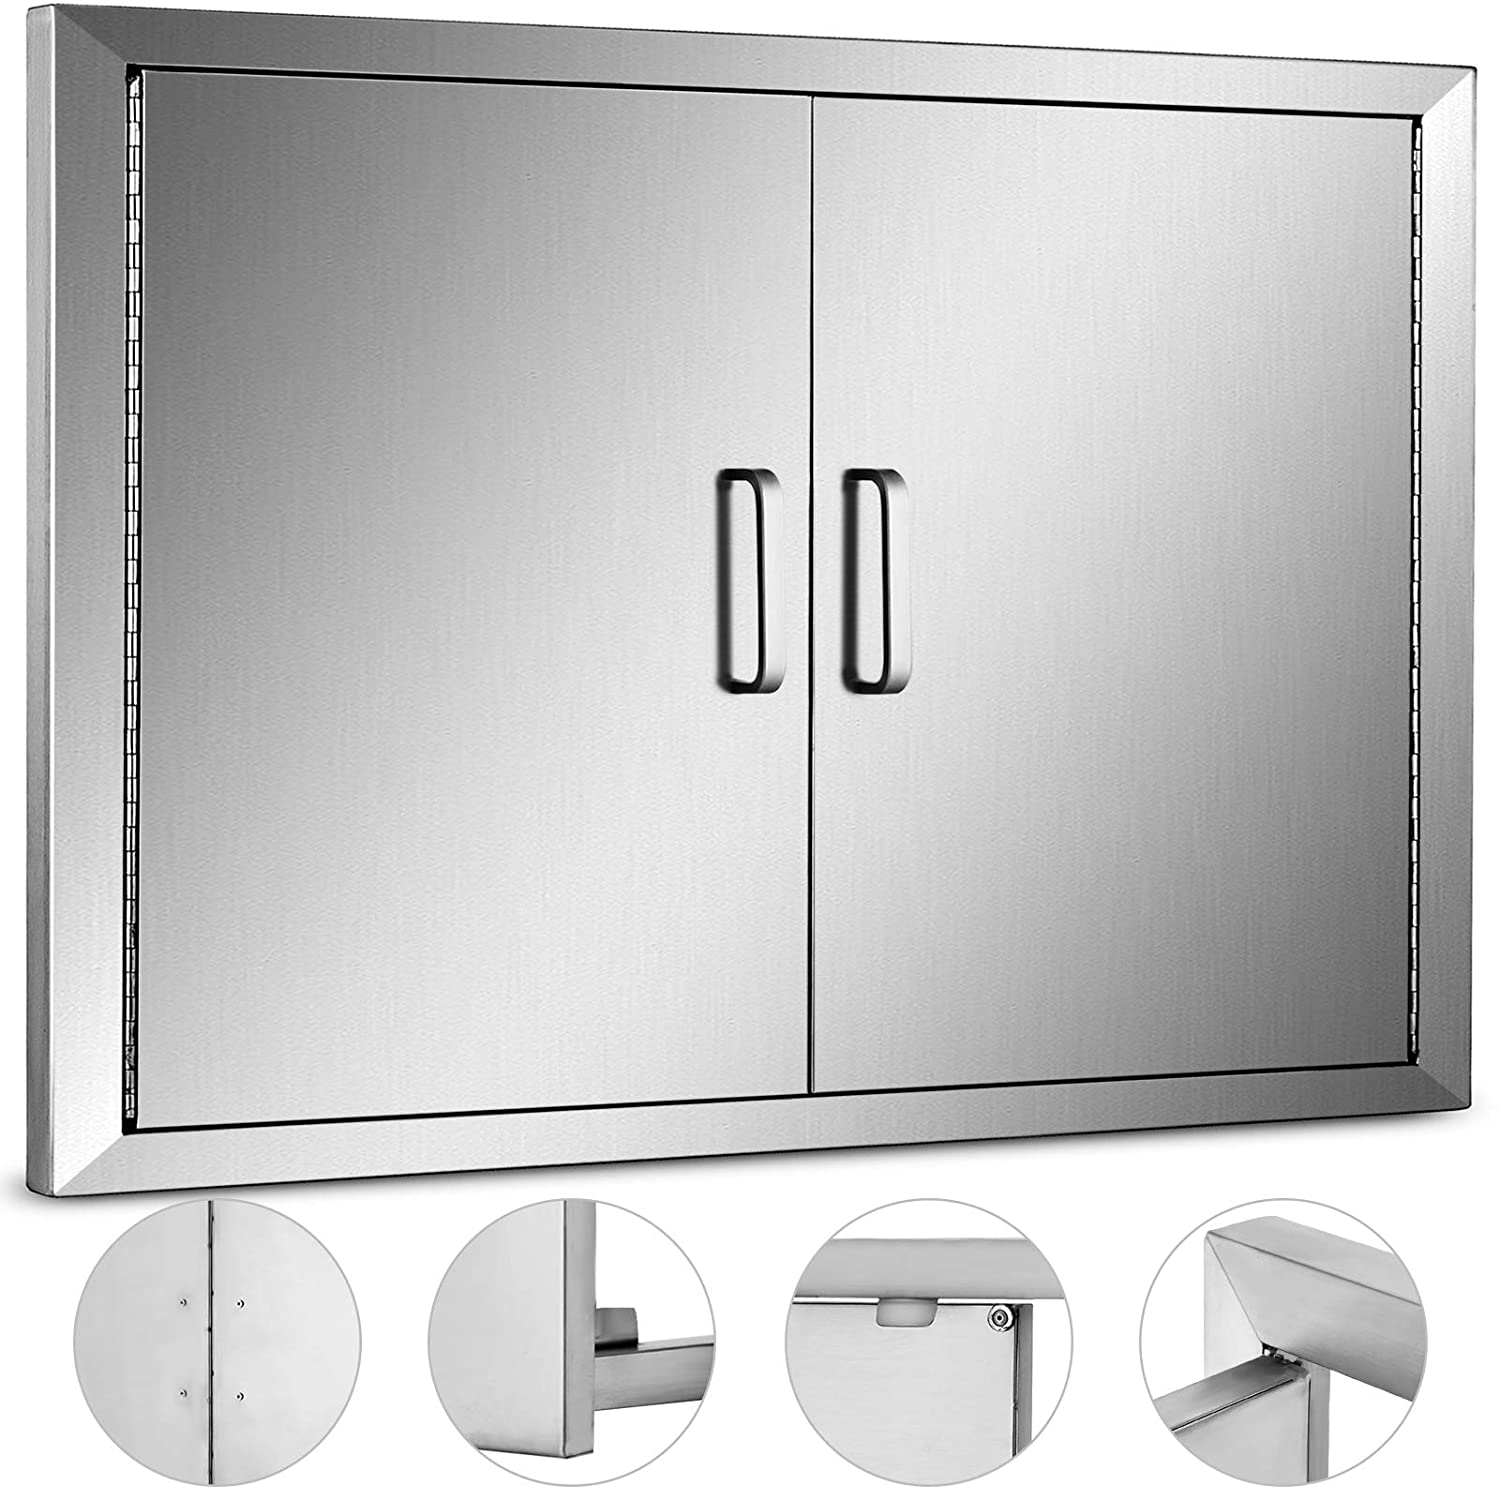 """Mophorn Double Wall BBQ Access Door Cutout 31"""" Width x 24"""" Height BBQ Island Door w/Brushed Stainless Steel Perfect for Outdoor Kitchen or BBQ Island"""